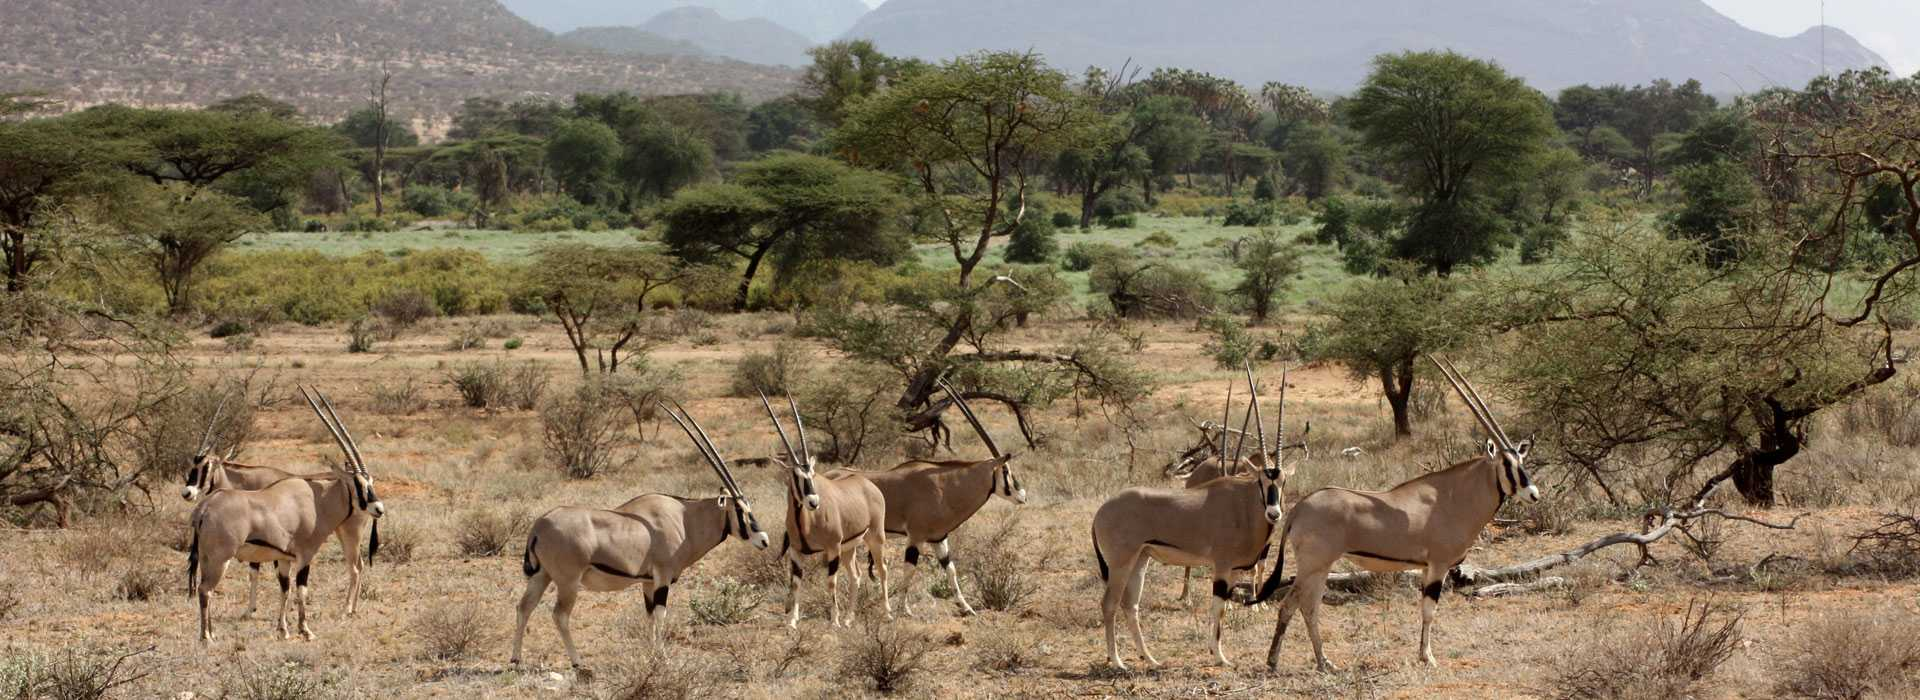 Gemsbok In Samburu, Kenya